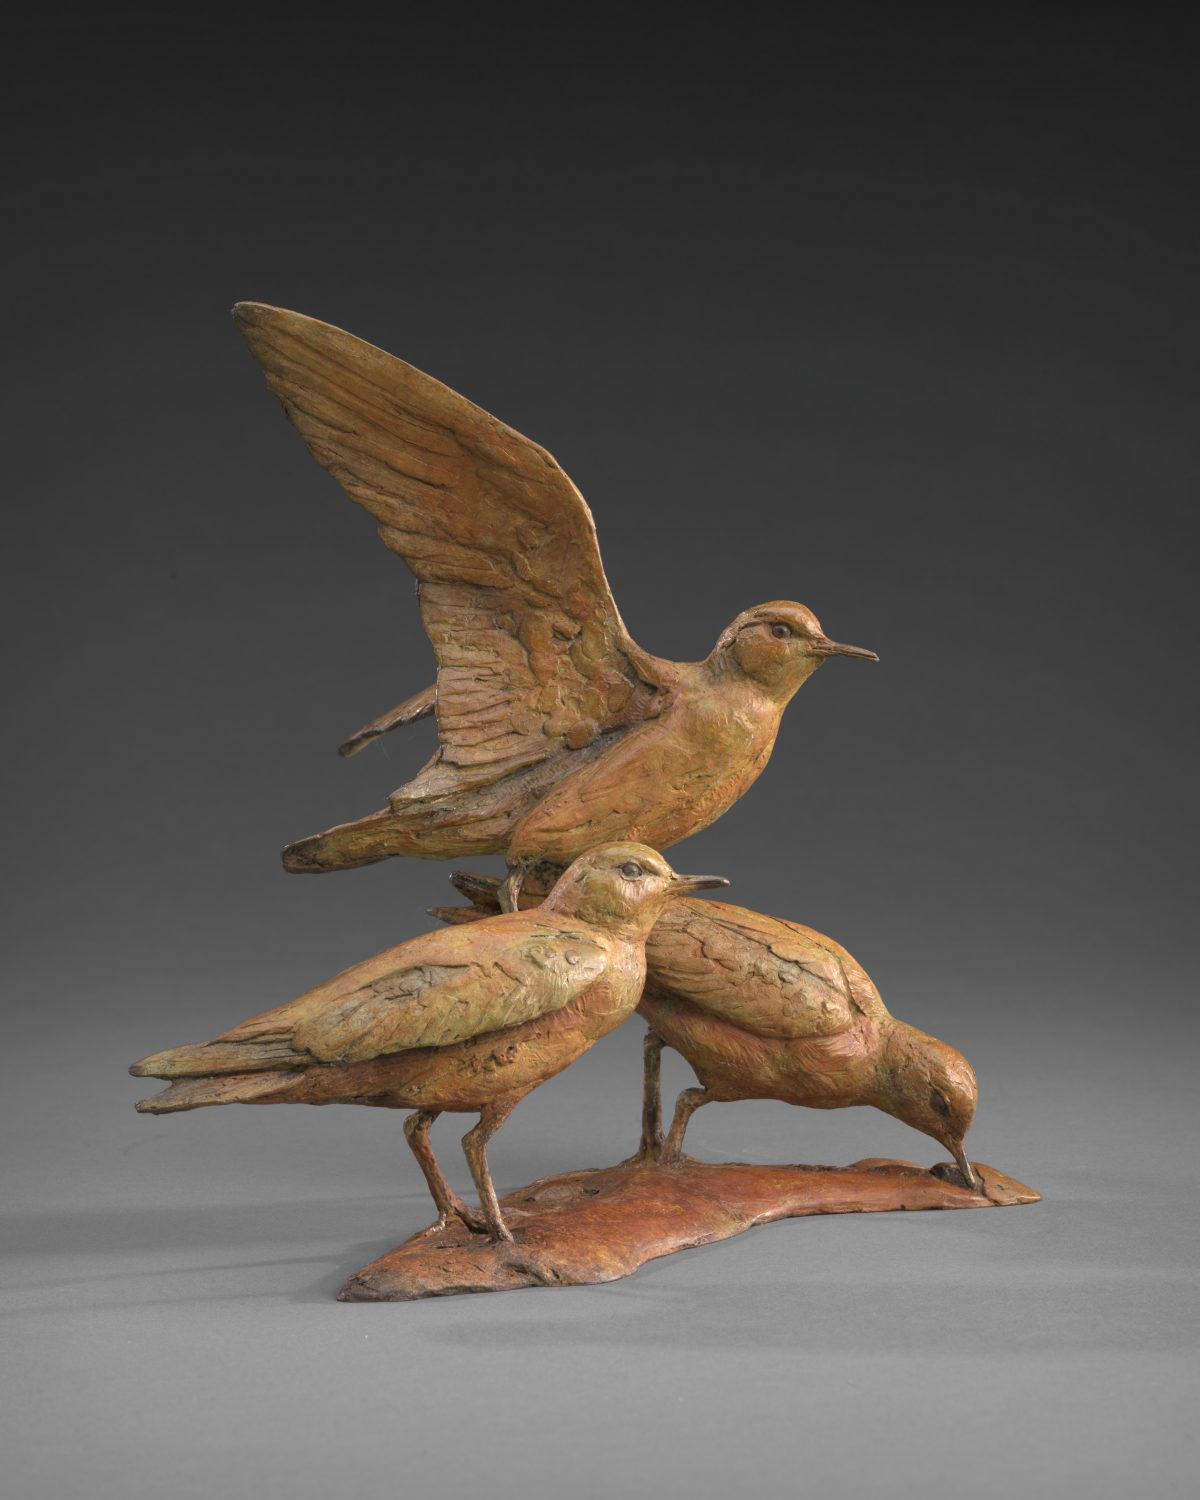 """Life is a Beach and then You Fly (Sandpipers)"" by Walter Matia, Bronze Edition 12/24, 9.5 by 10 by 9 inches. (Courtesy of Tim Newton)"